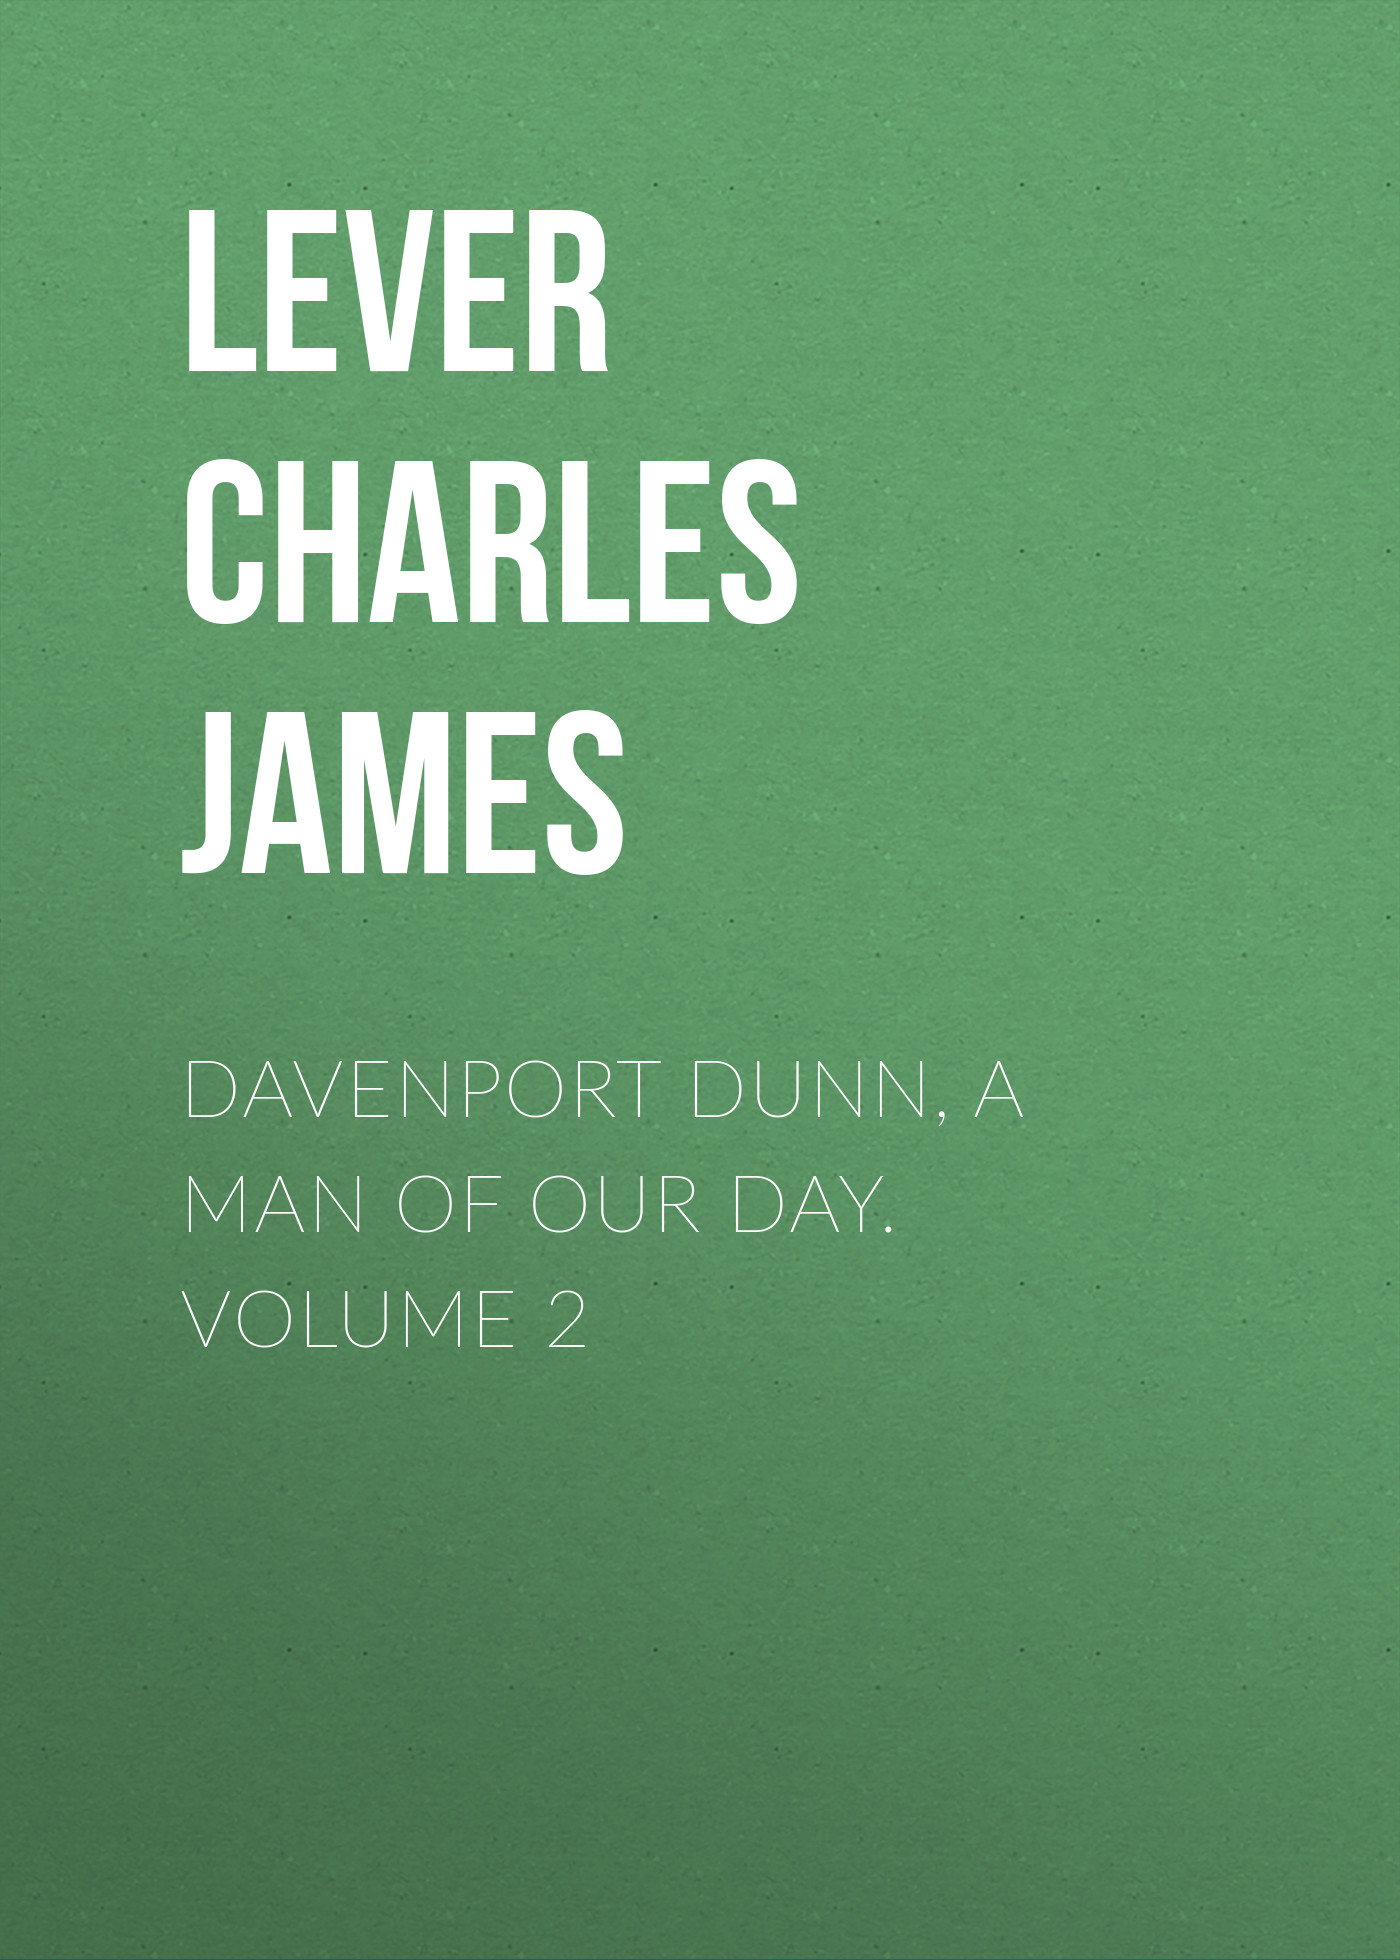 Lever Charles James Davenport Dunn, a Man of Our Day. Volume 2 картридер внешний transcend ts rdc2k usb type c